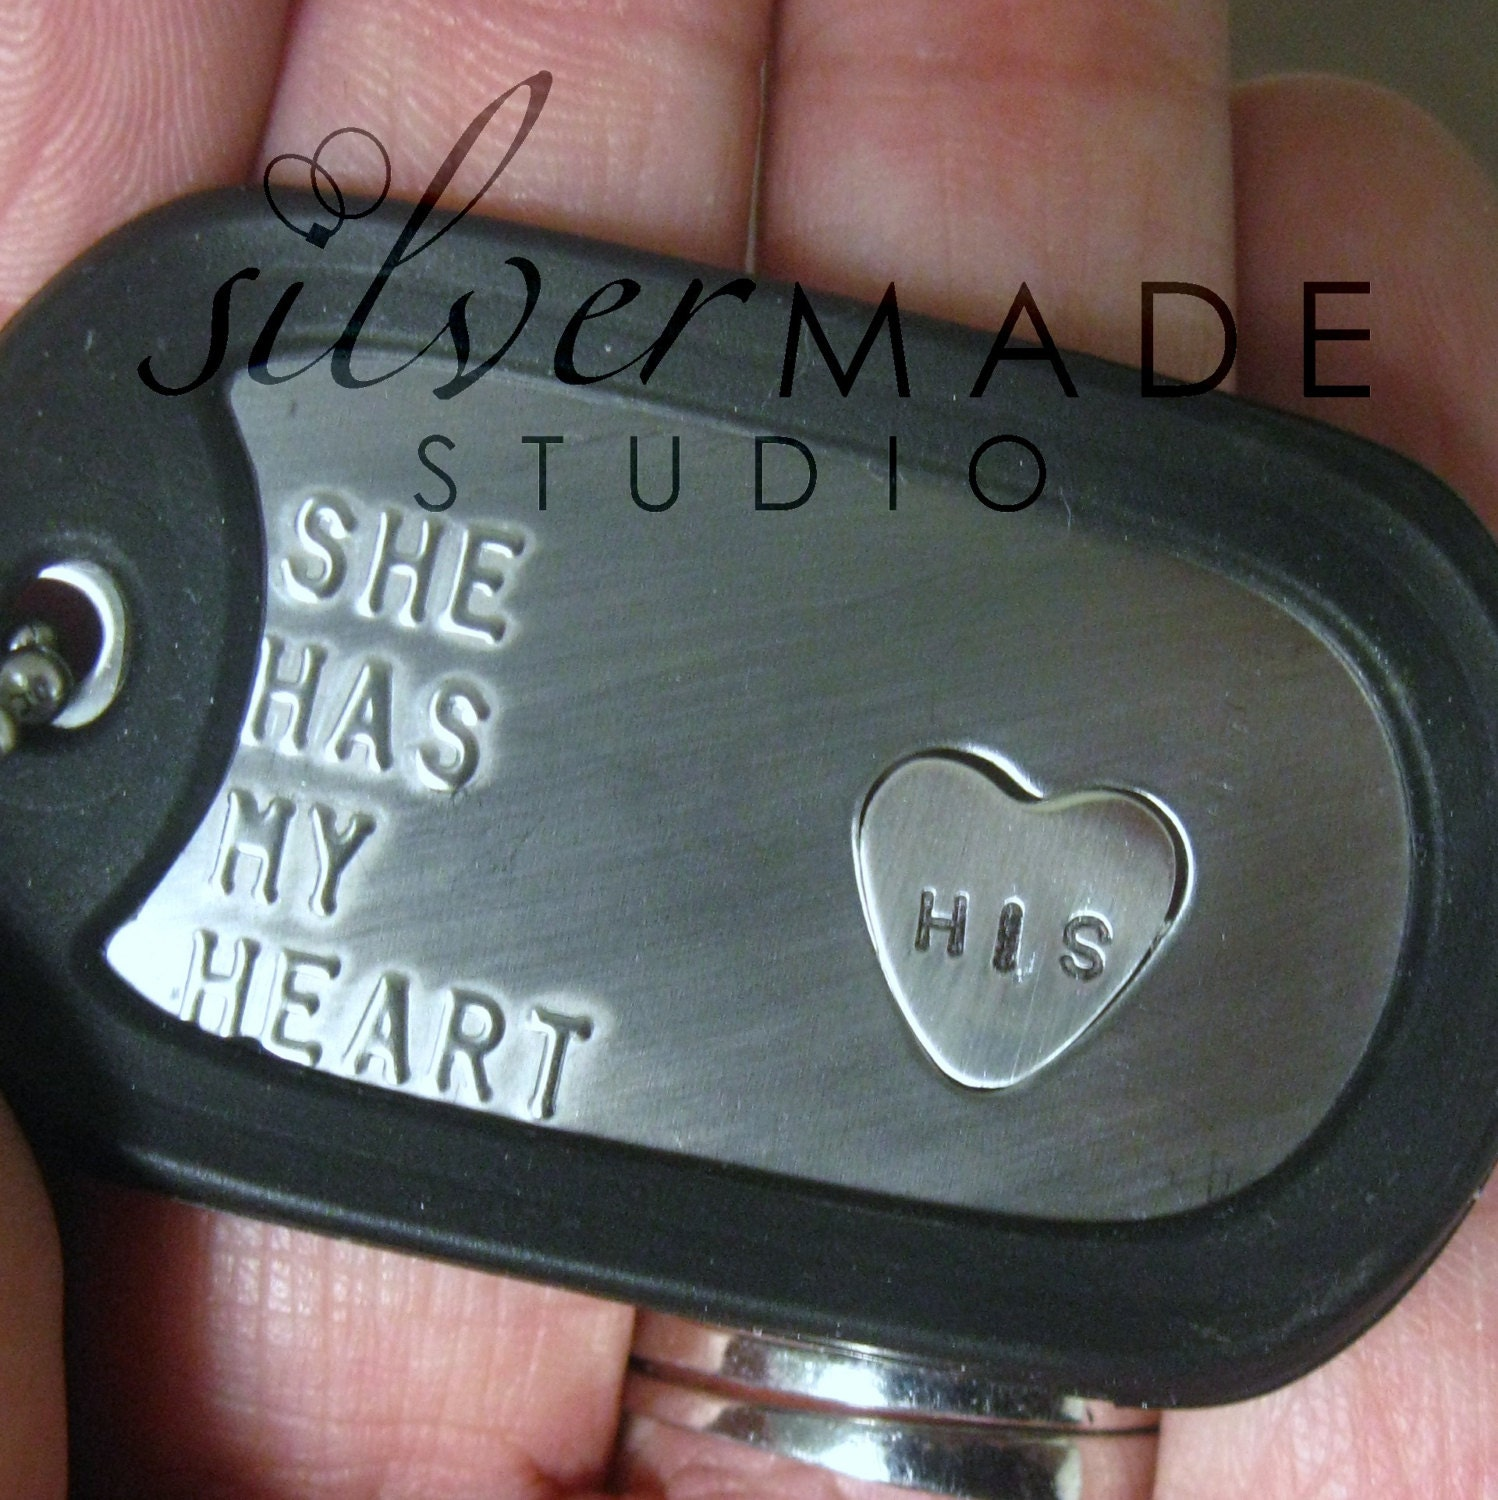 Military Stainless dogtag and sterling HEART RING - SilverMadeStudio